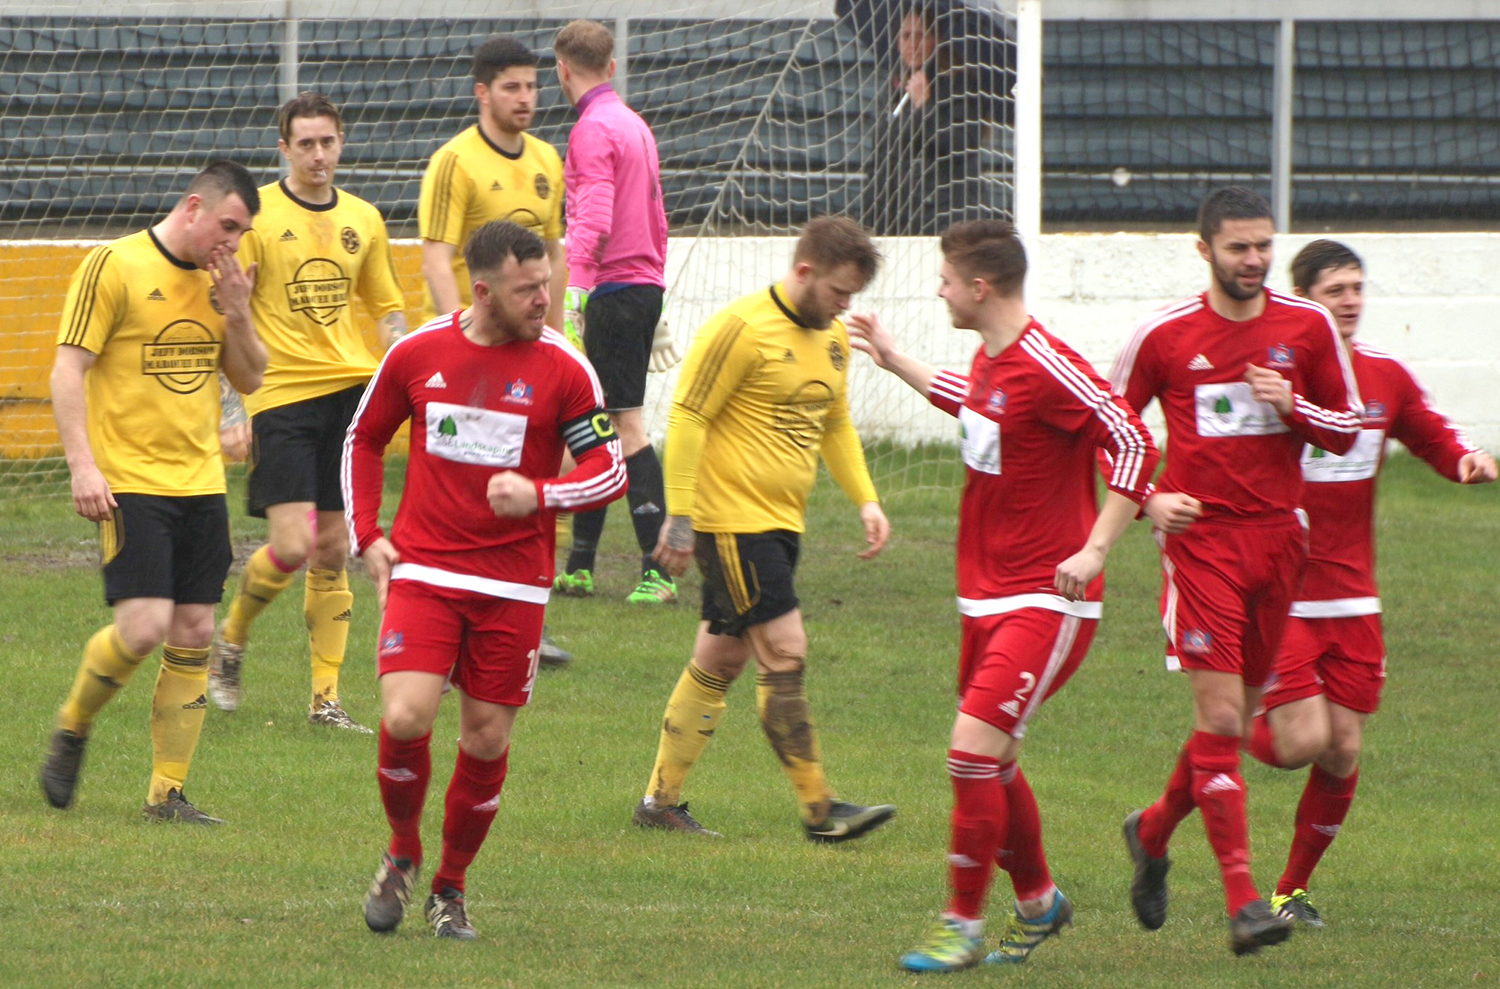 Aycliffe F.C. 9th in League